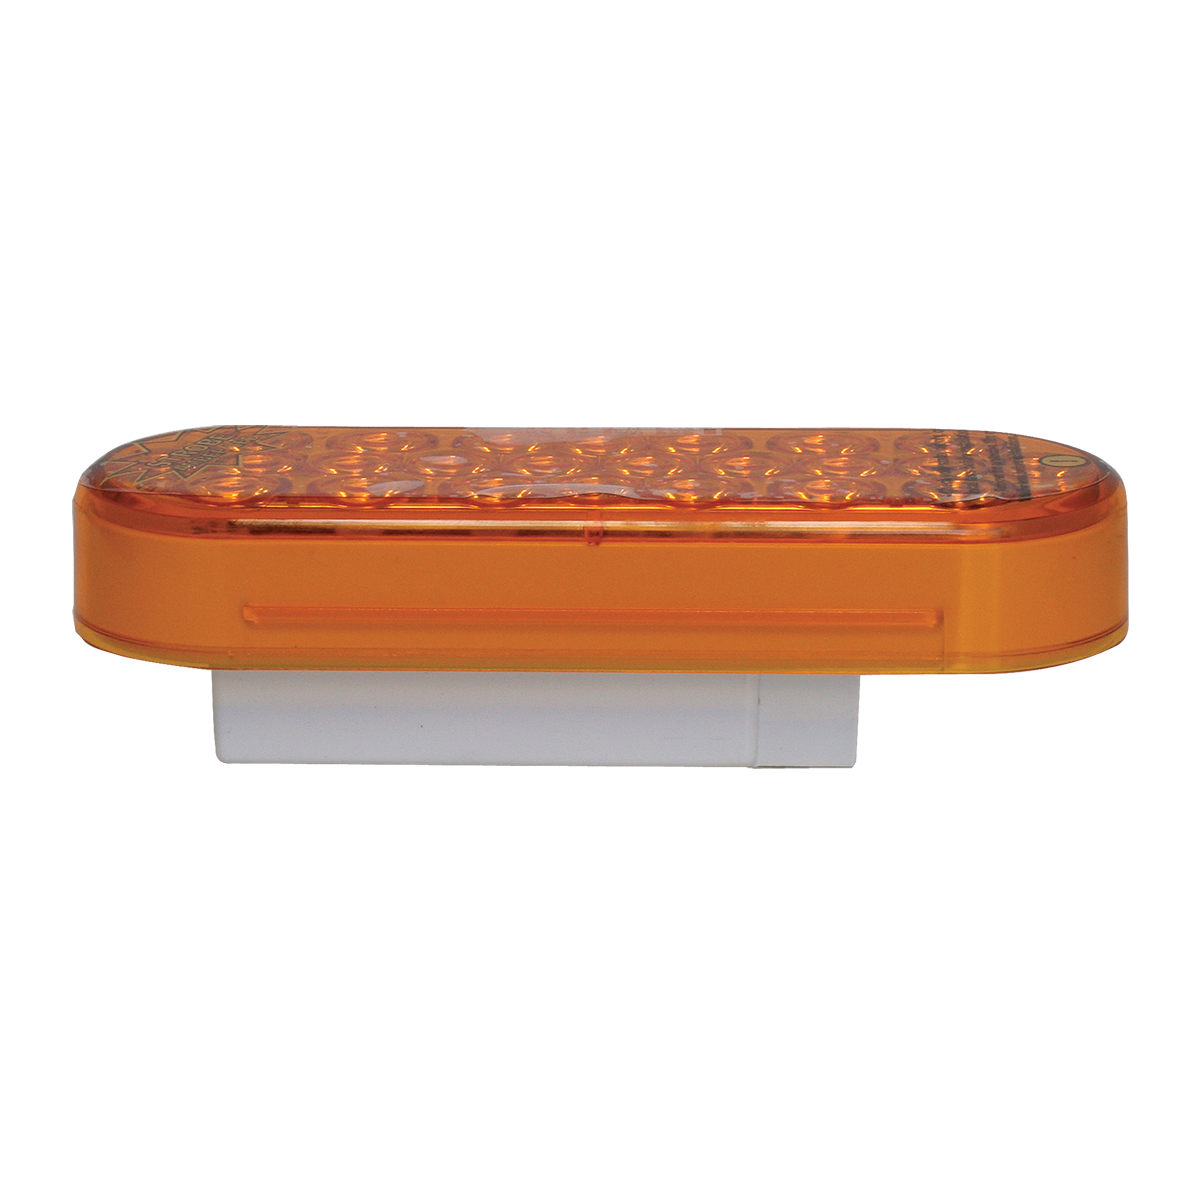 Oval Synchronous/Alternating Pearl LED Strobe Light in Amber/Amber